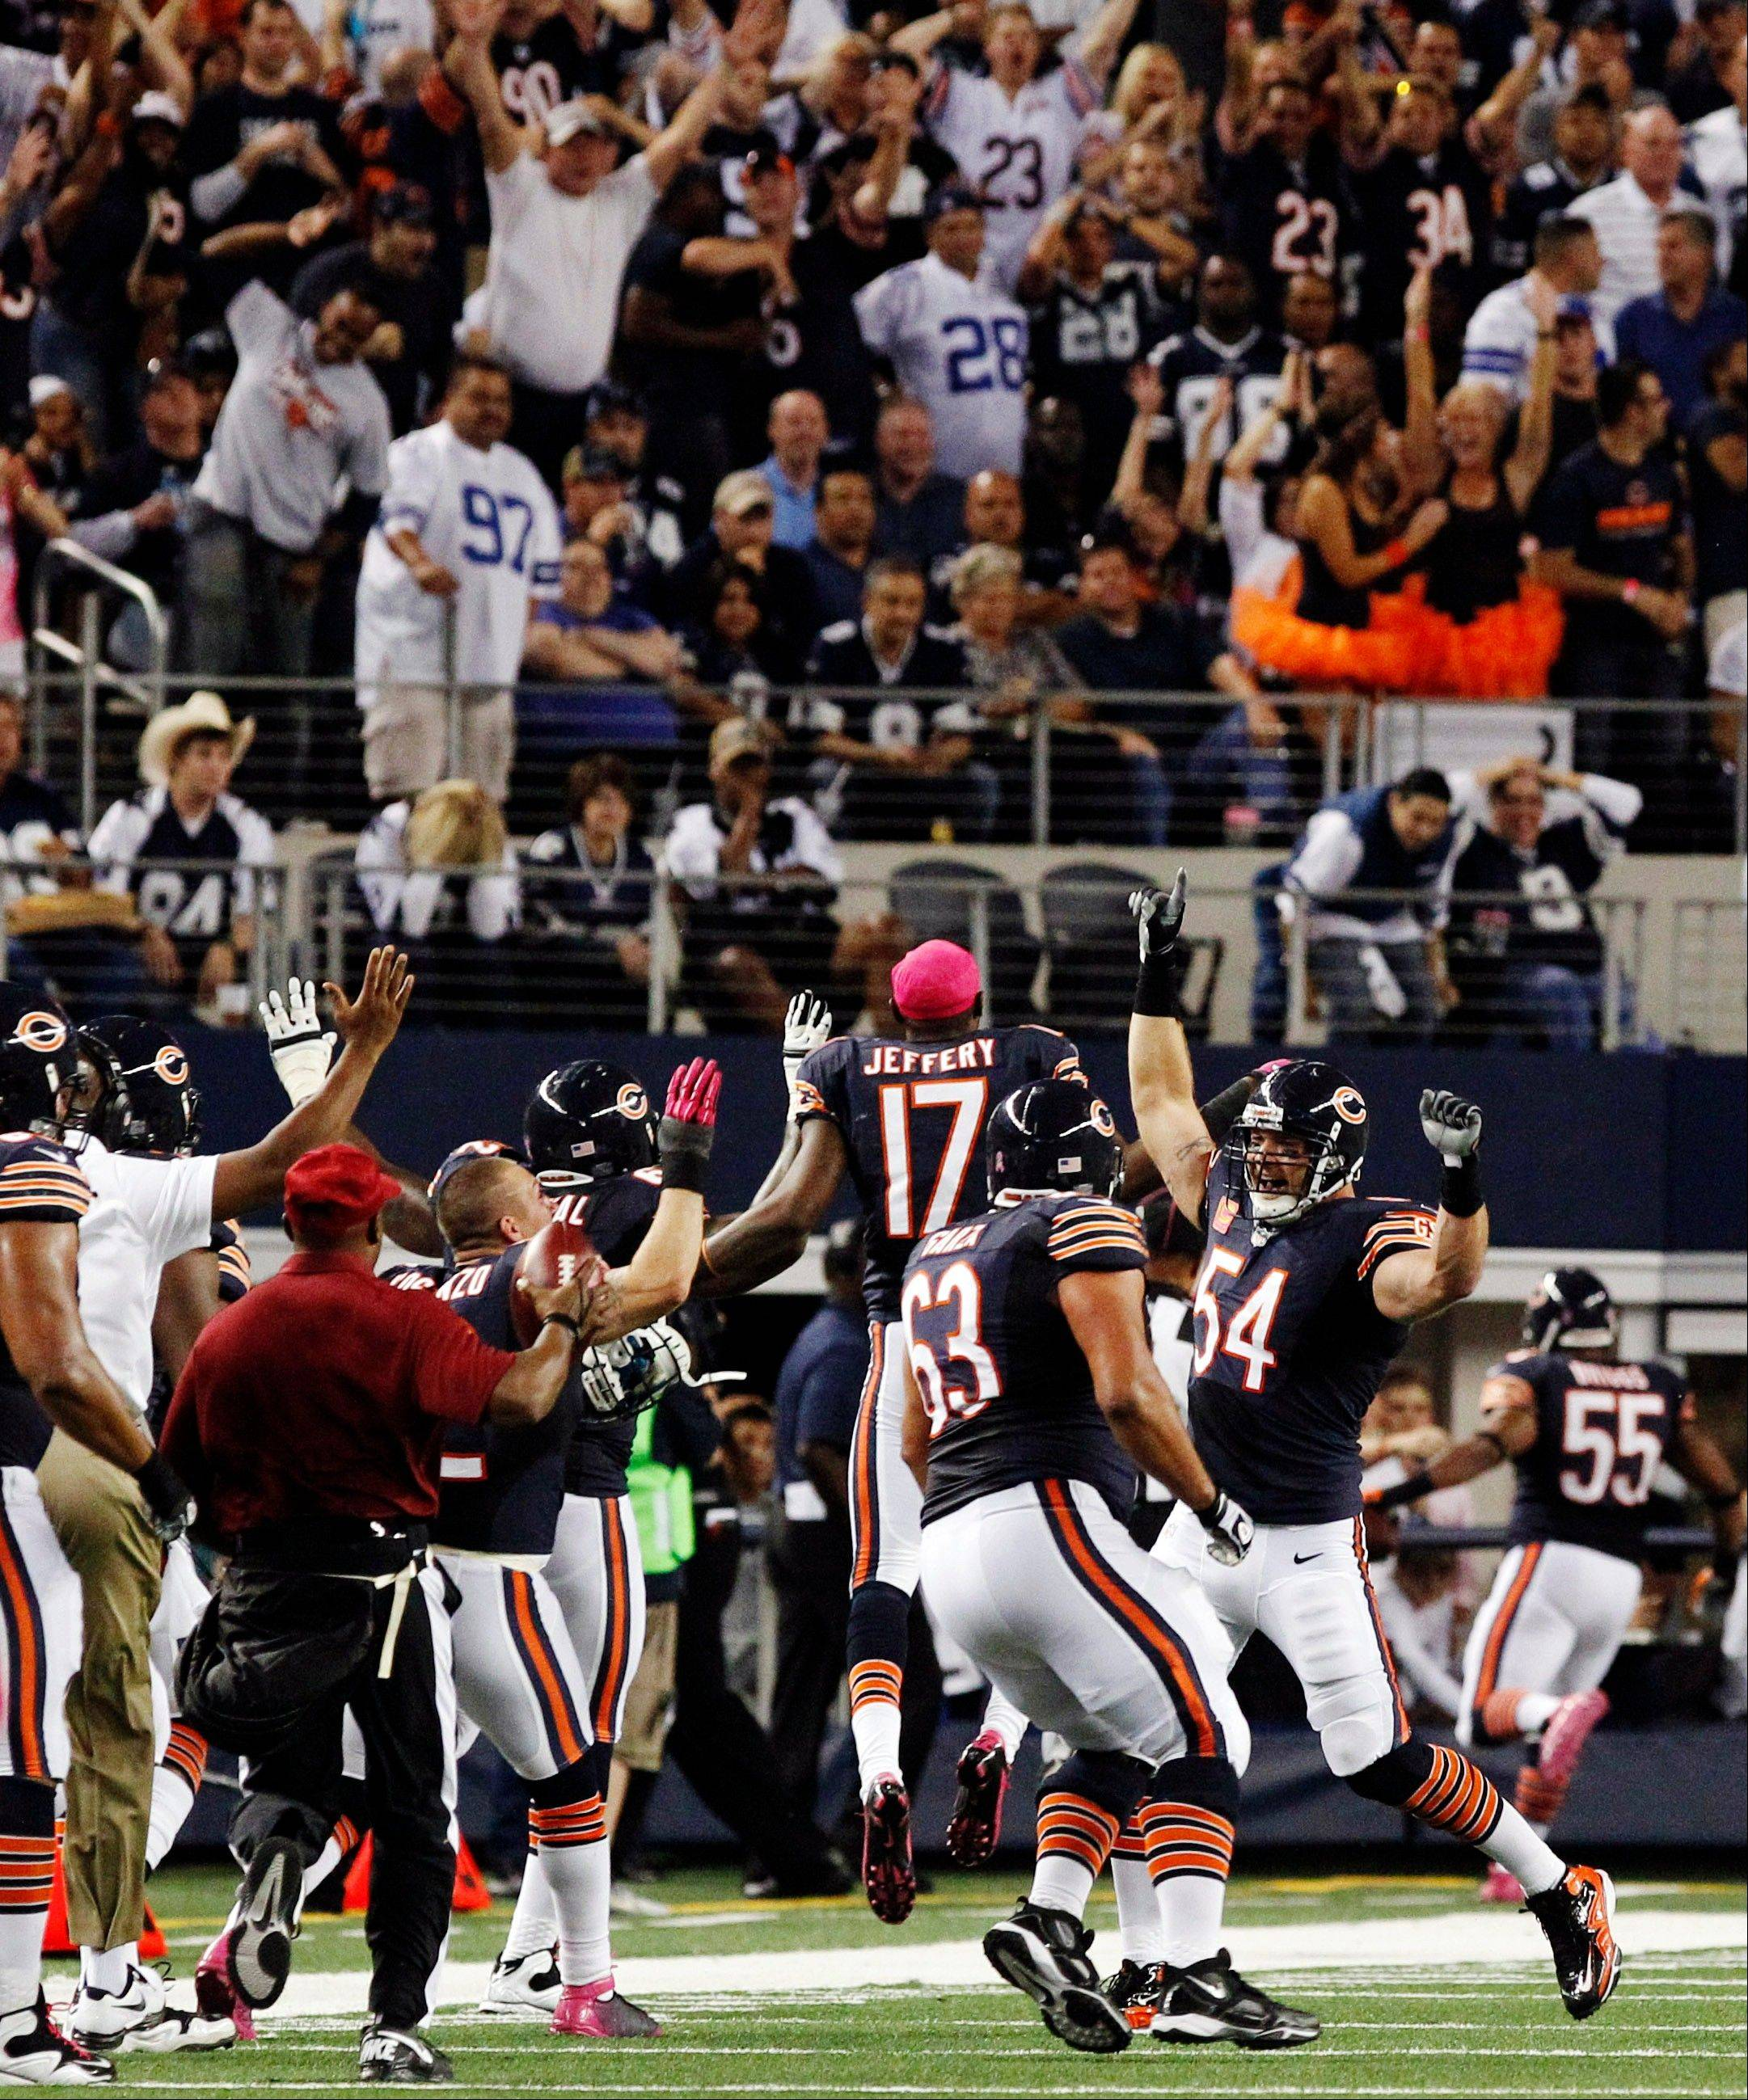 The Chicago Bears bench celebrates as outside linebacker Lance Briggs returns an interception from Dallas Cowboys quarterback Tony Romo for a touchdown during the second half.